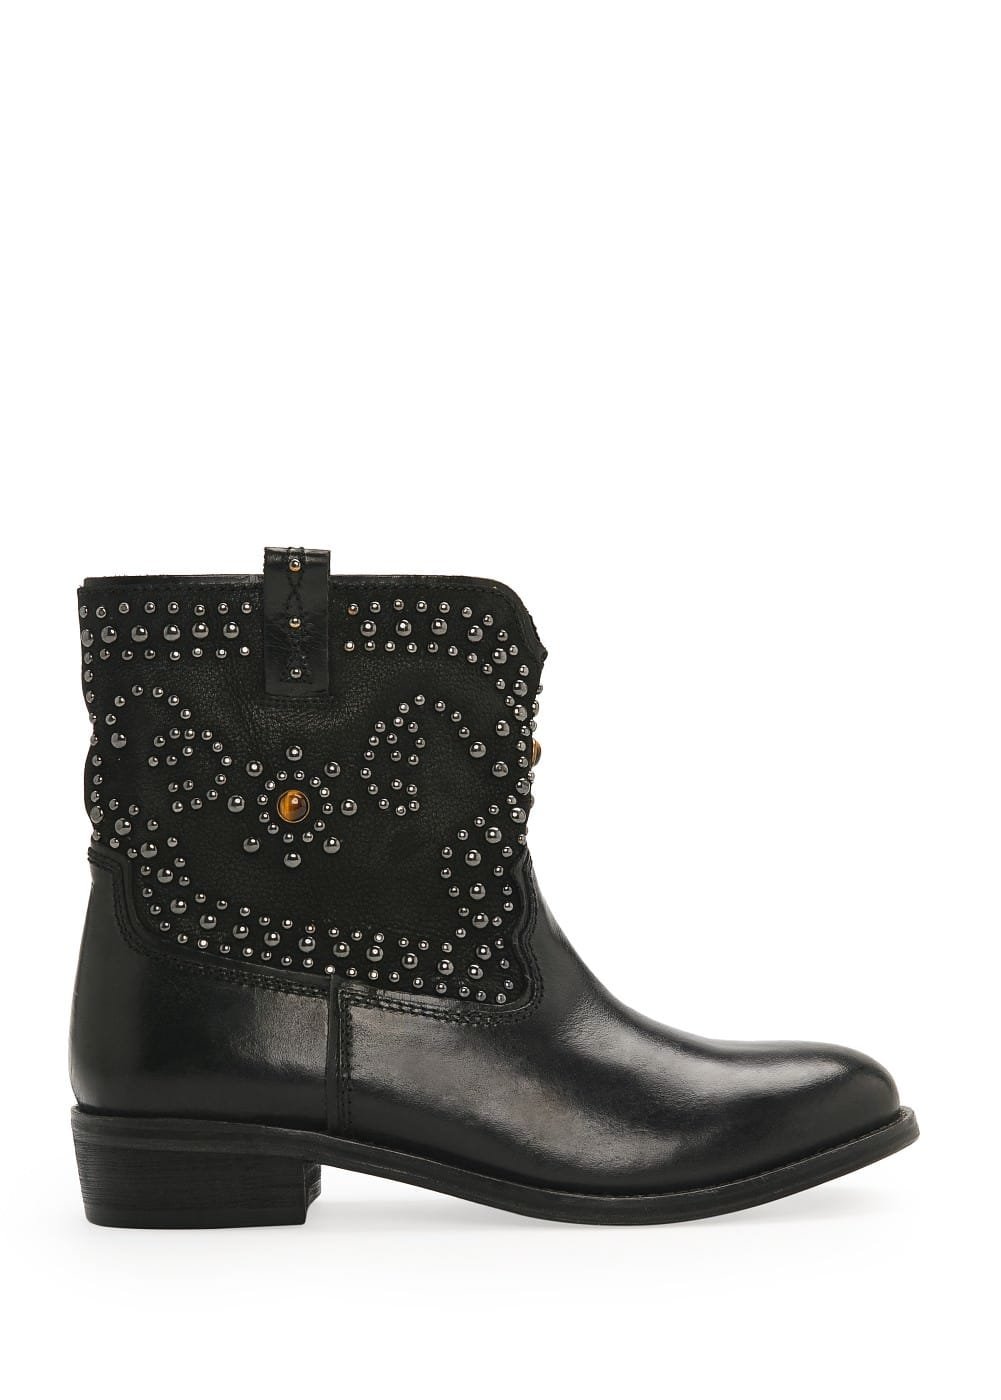 Tiger's eye leather ankle boots | MANGO